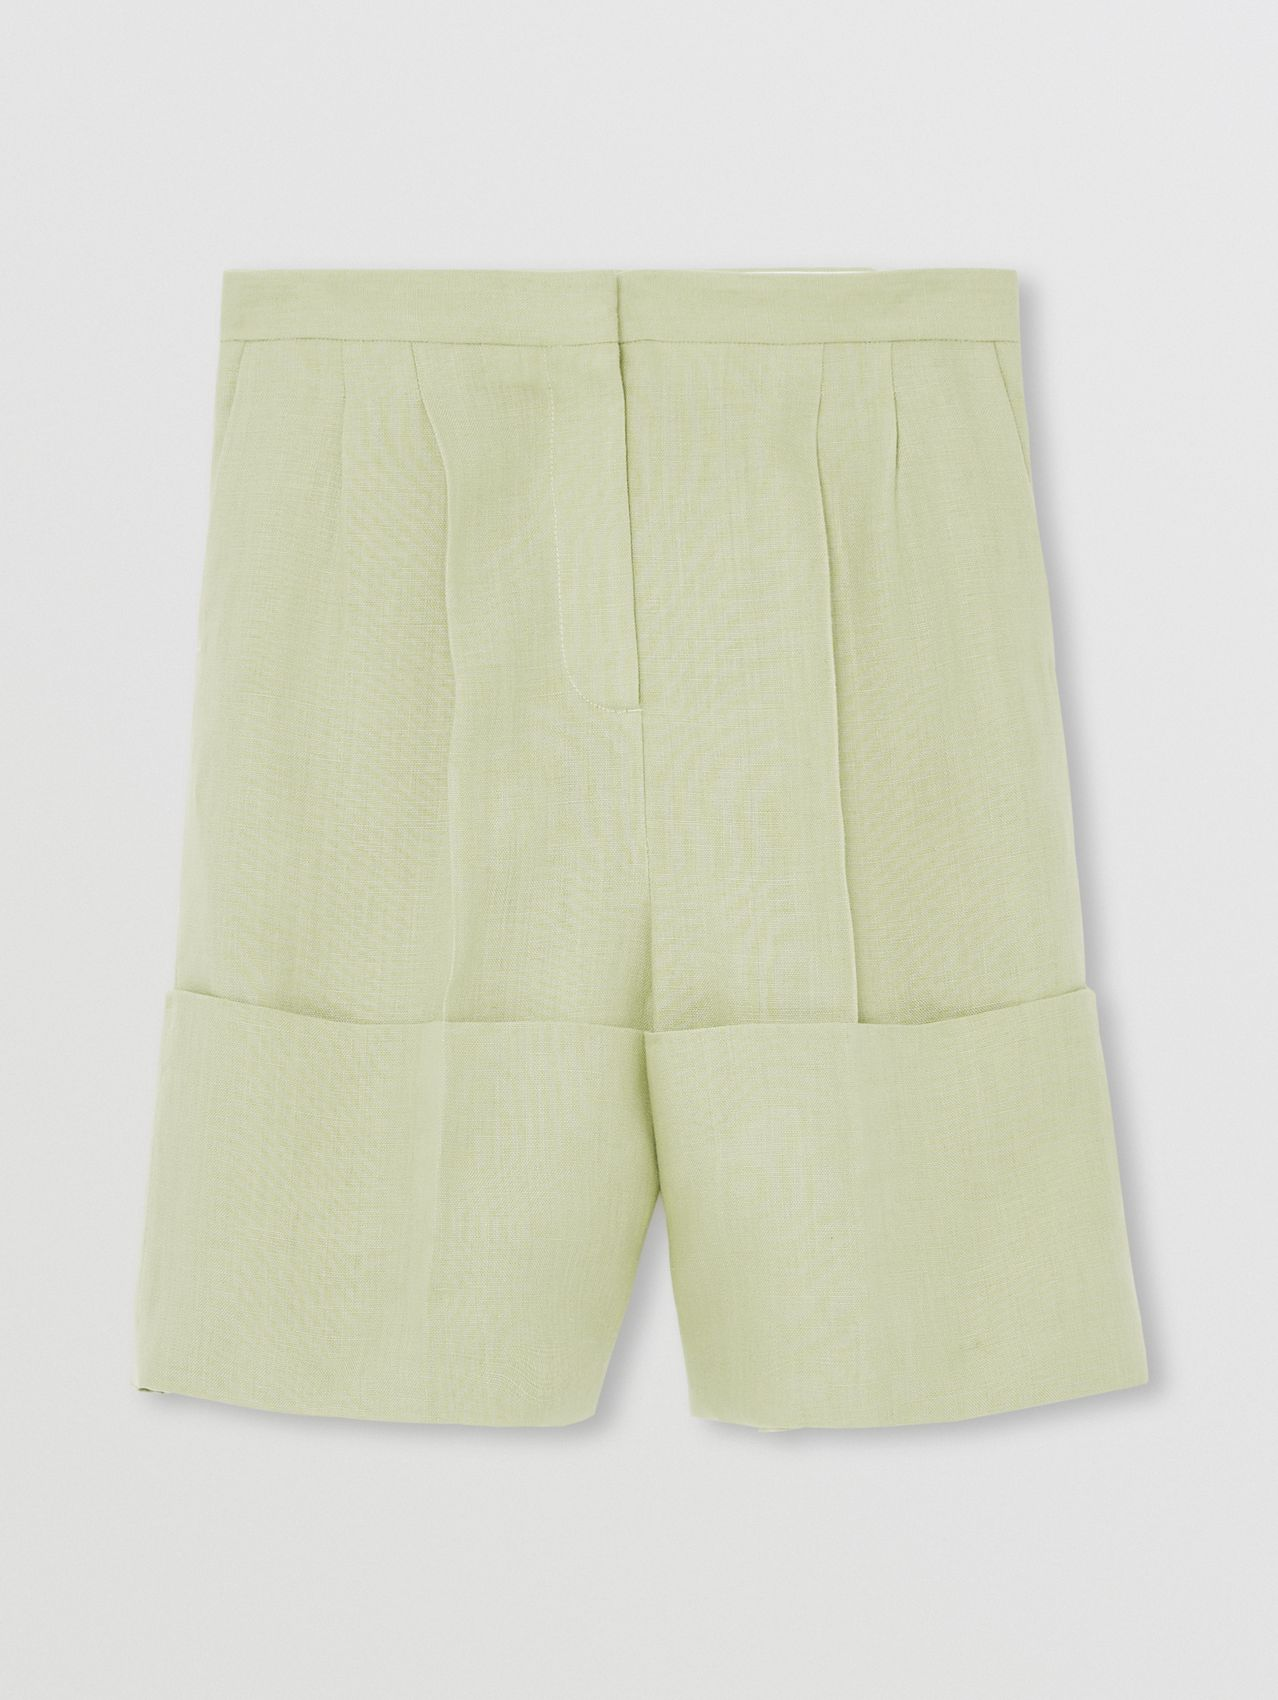 Cuff Detail Linen Tailored Shorts in Mist Green